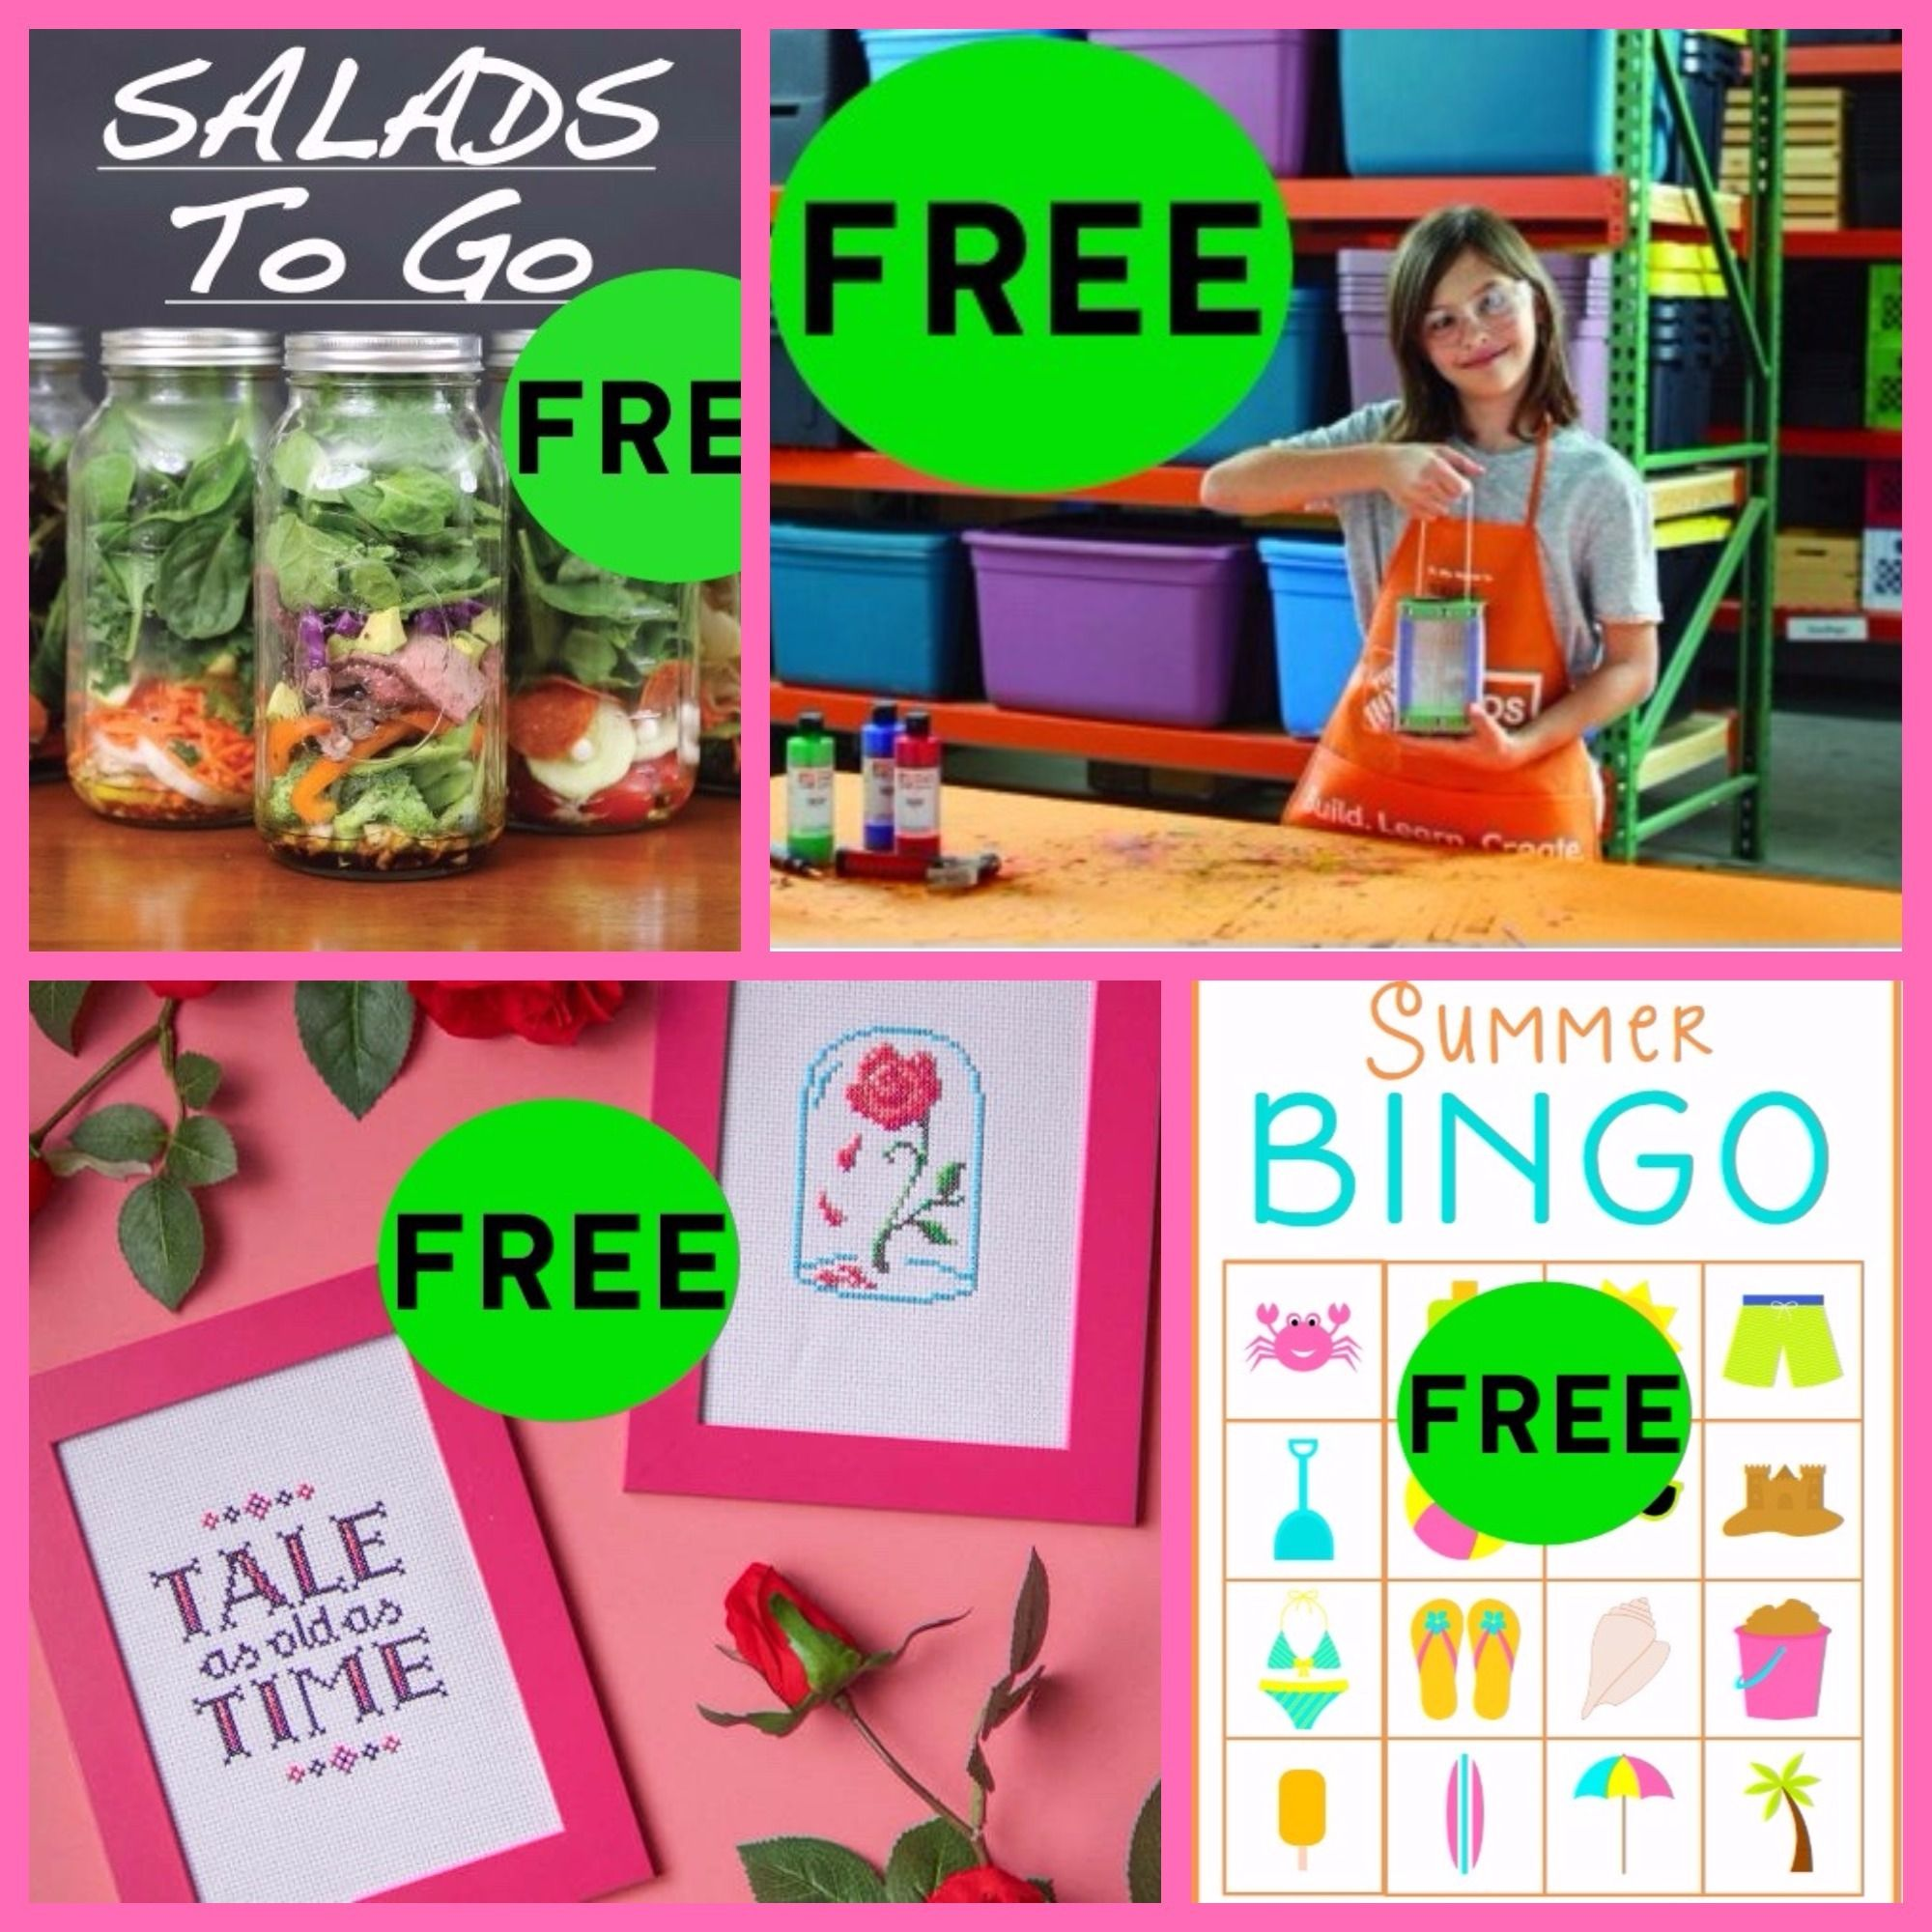 FOUR (4!) FREEbies: Summer Bingo Printable, Beauty and the Beast Cross Stitch DIY Craft, Bug House and Mason Jar Salad Recipes eBook!